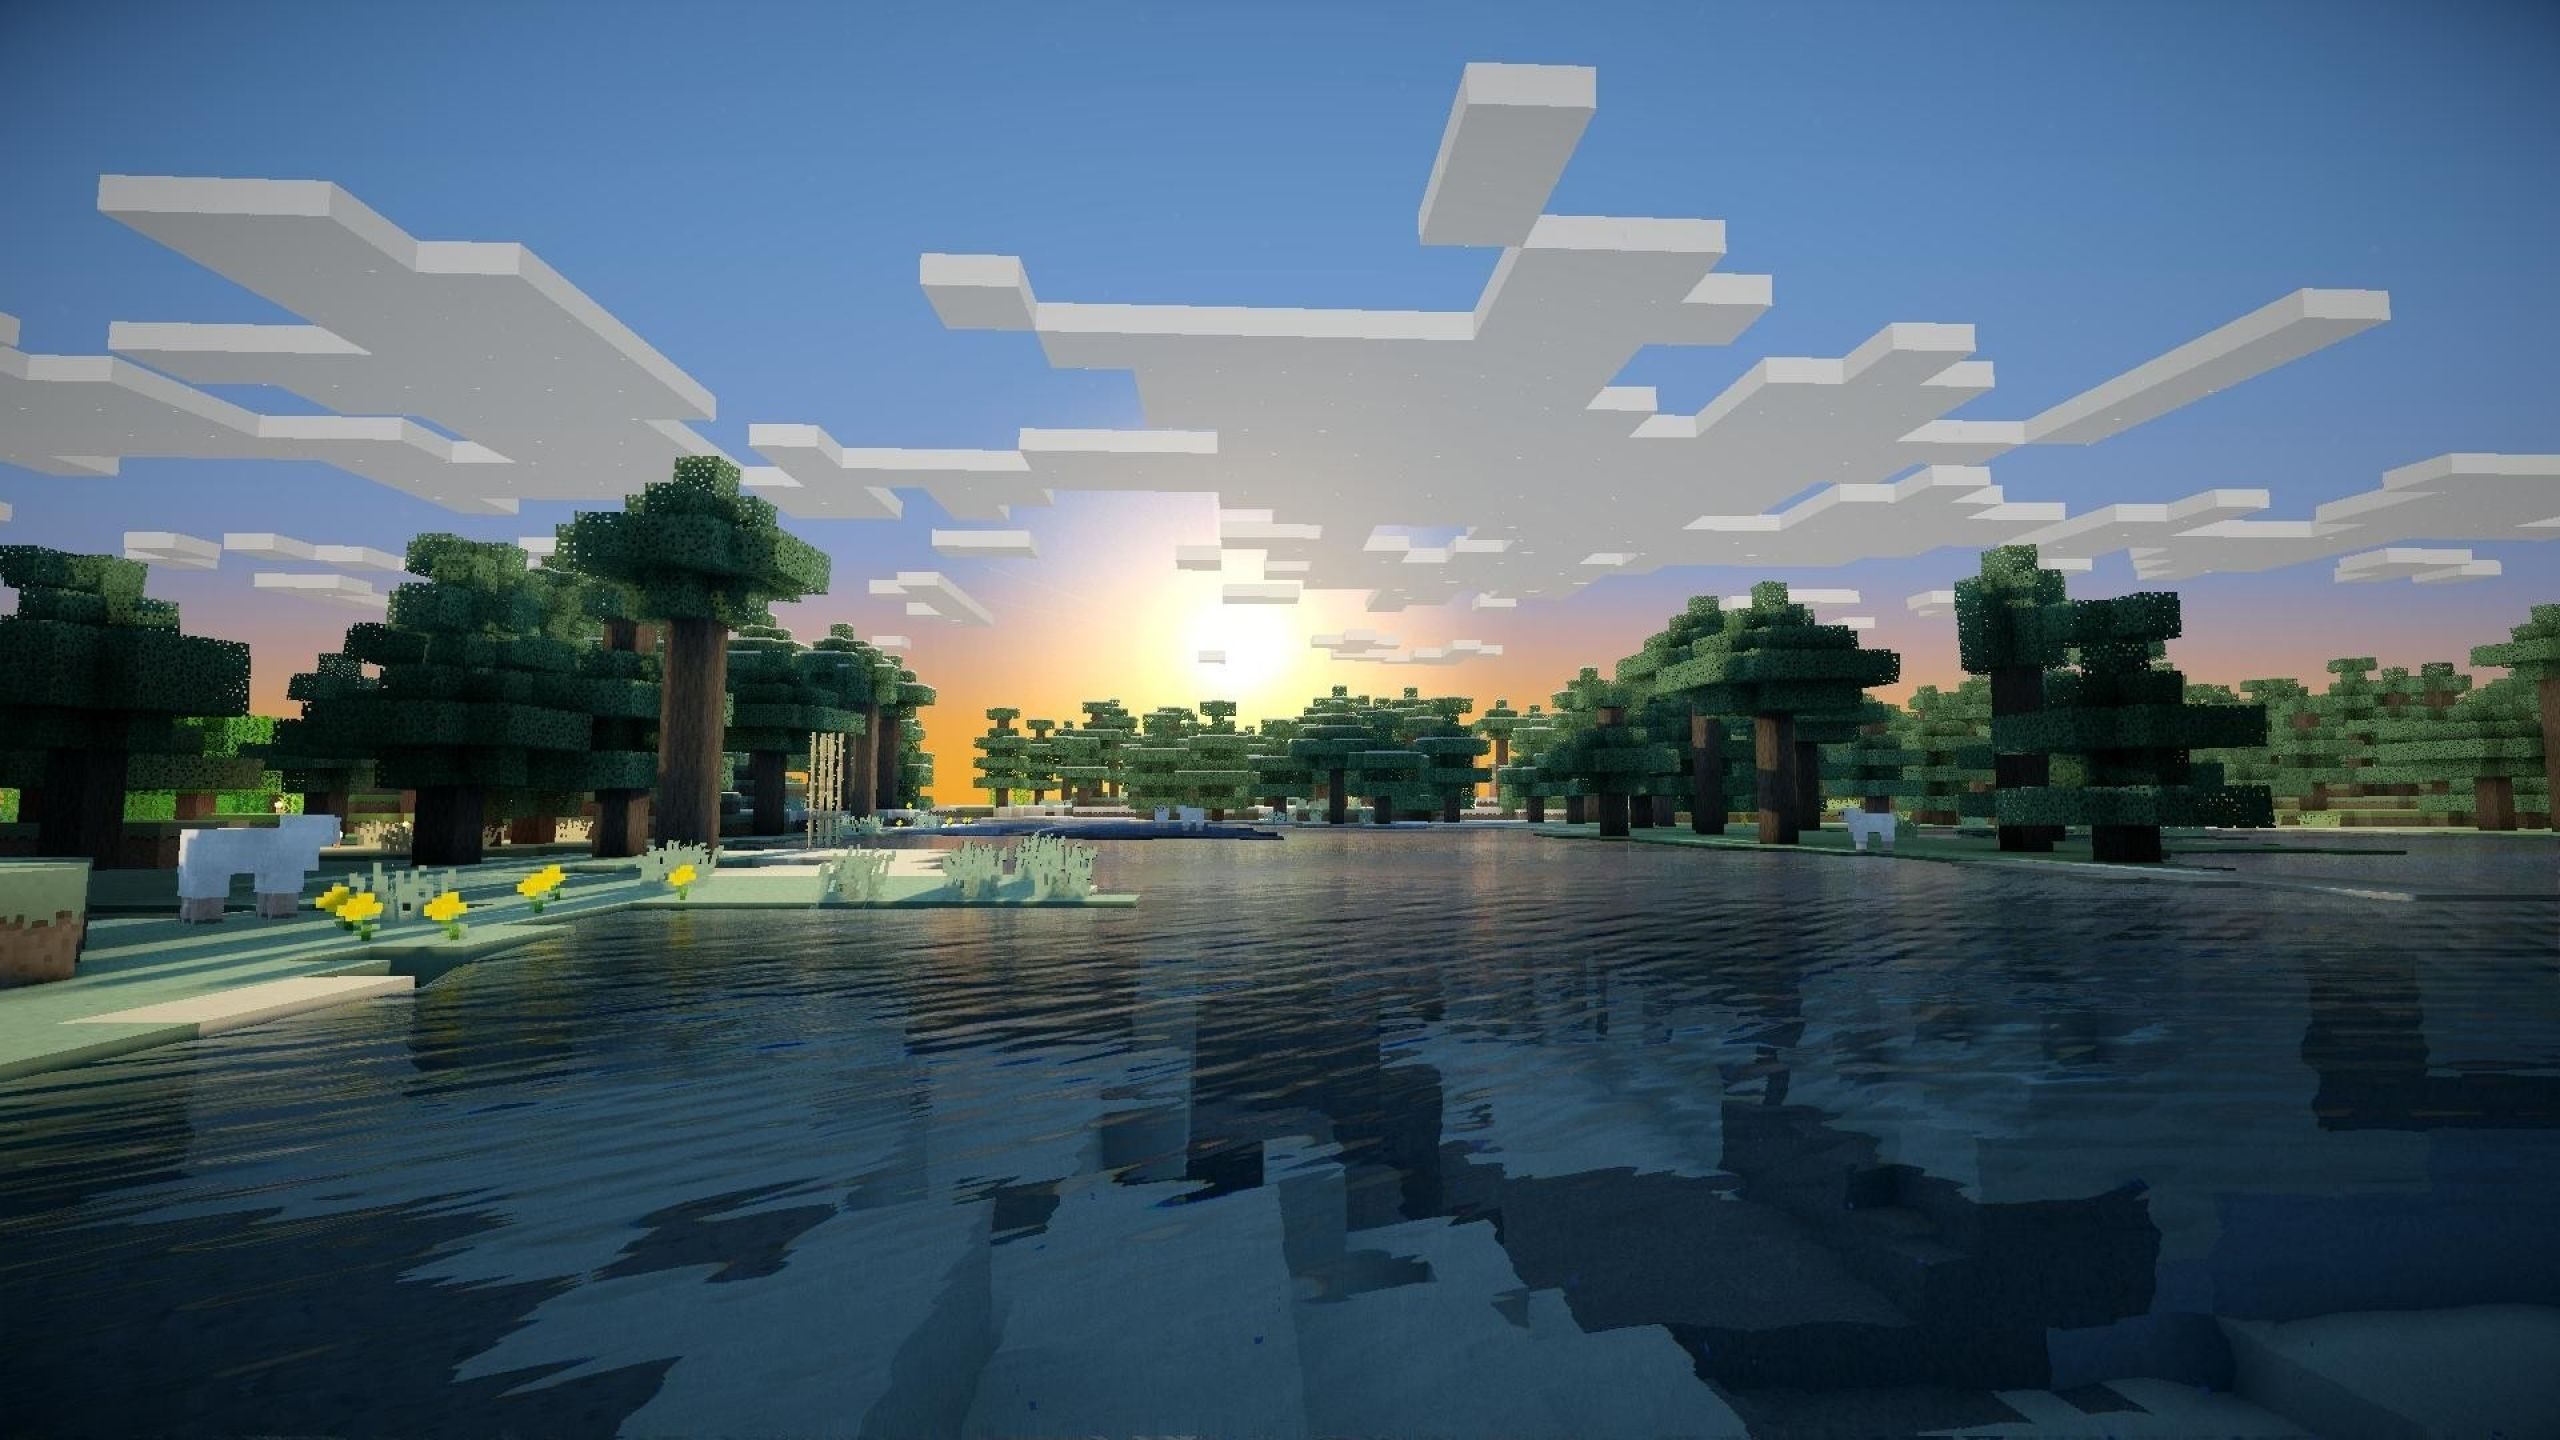 Minecraft Hd Wallpapers Backgrounds Wallpaper Minecraft Wallpaper Aesthetic Wallpapers Iphone 5s Wallpaper